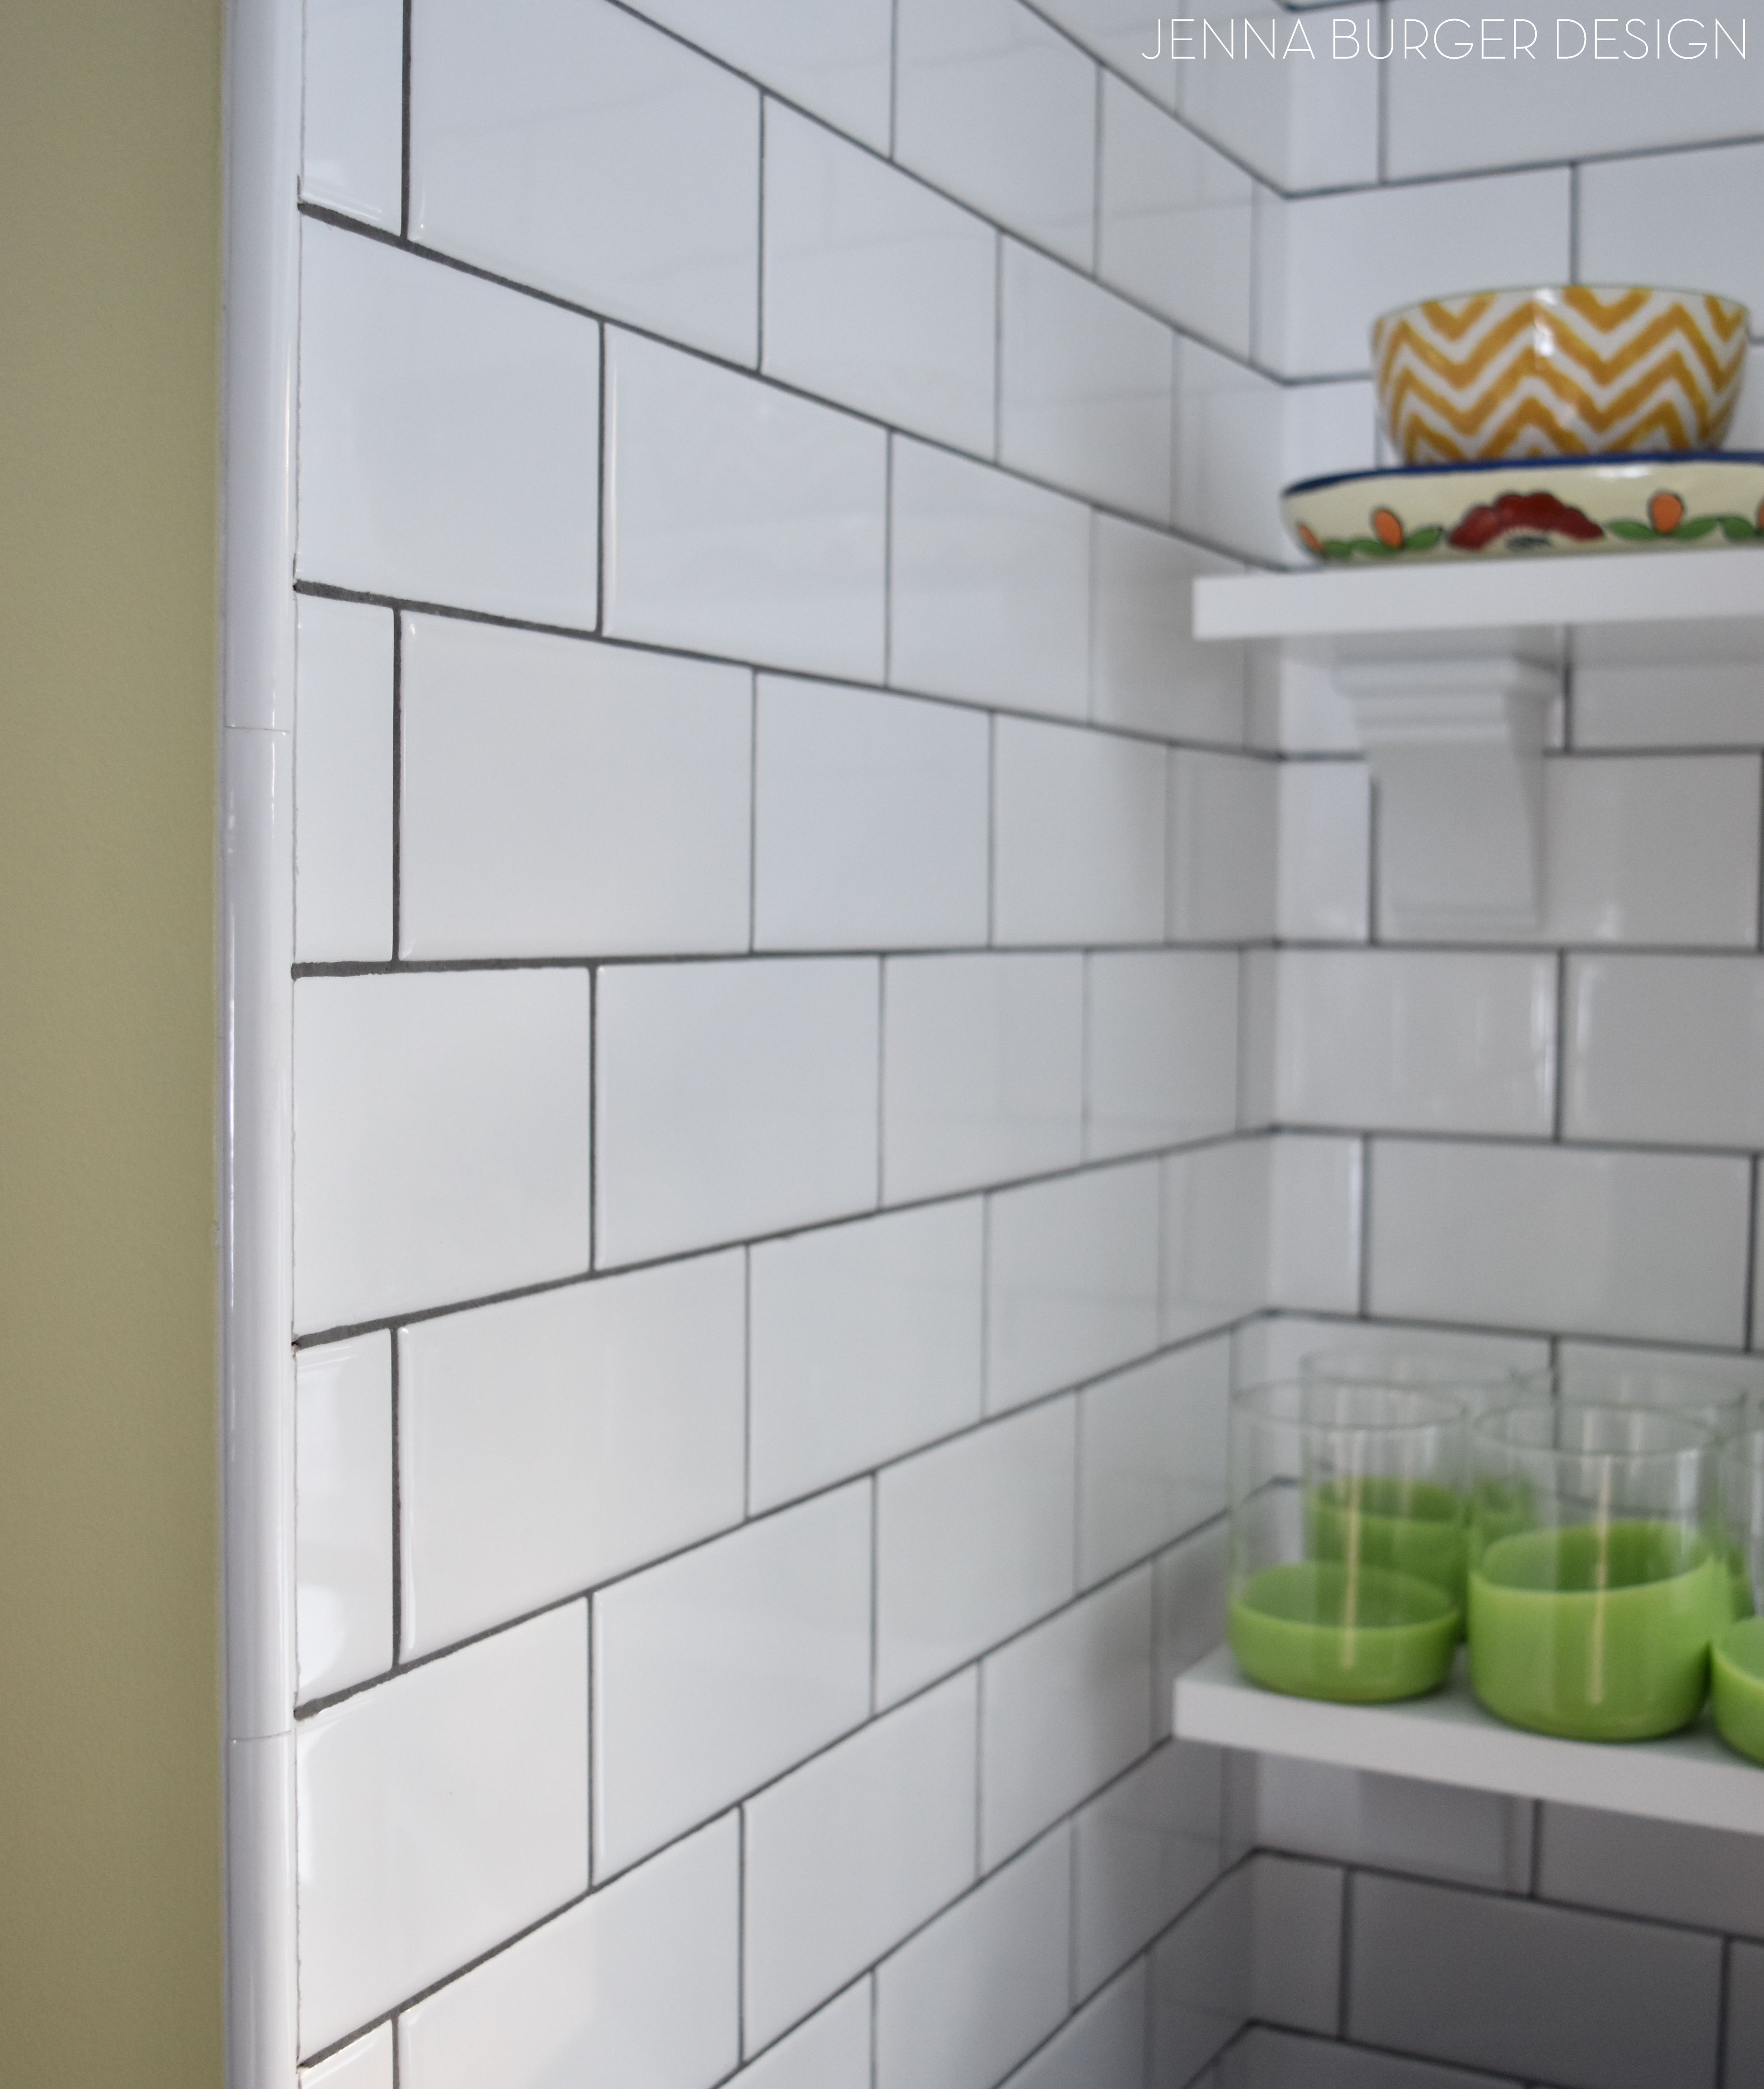 Subway tile how do you choose the right subway tile for the subway tile how do you choose the right subway tile for the project there dailygadgetfo Choice Image